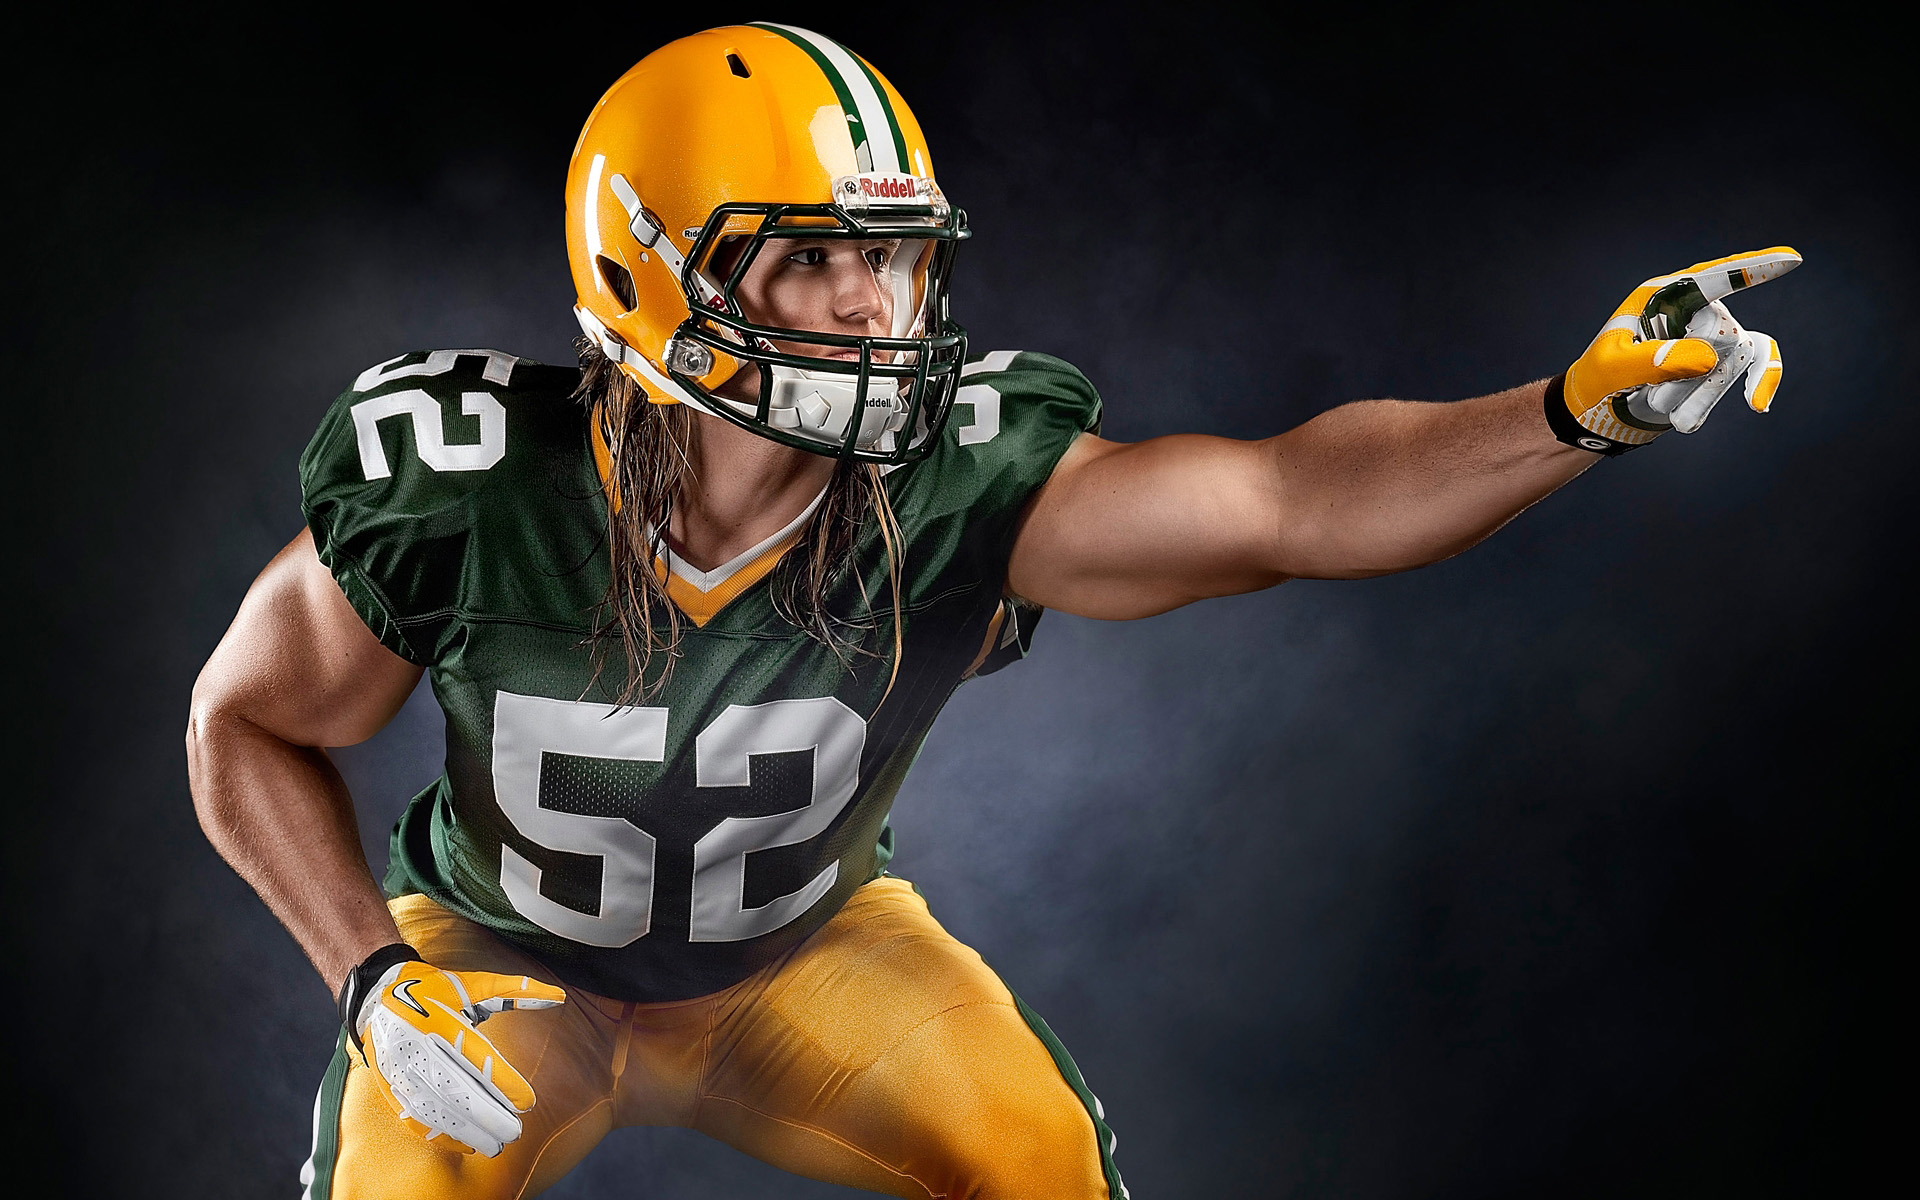 Clay Matthews photoshoot by Blair Bunting